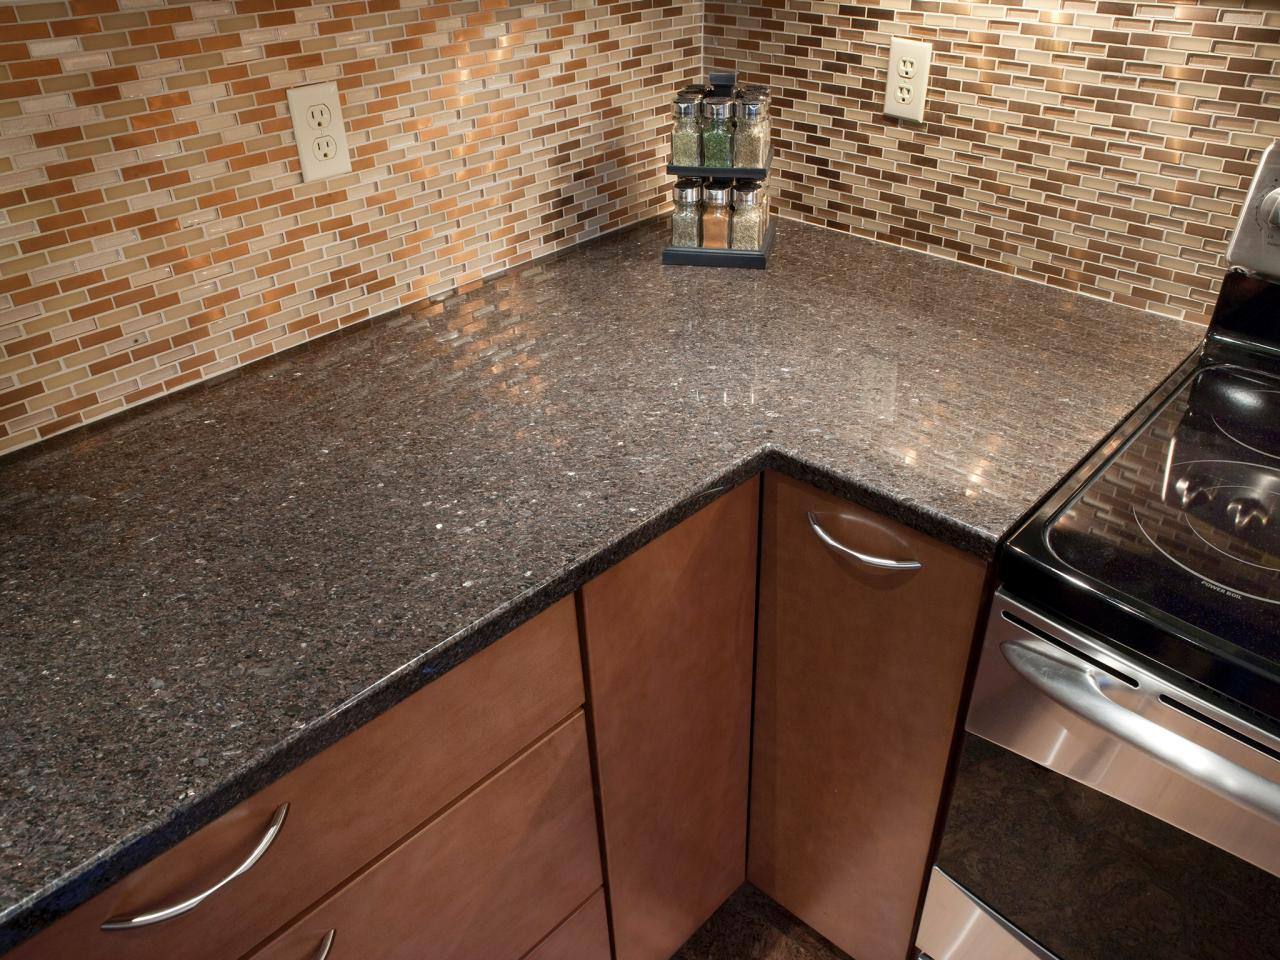 HRMYM109_Granite-Kitchen-Countertop_4x3.jpg.rend.hgtvcom.1280.960.jpeg